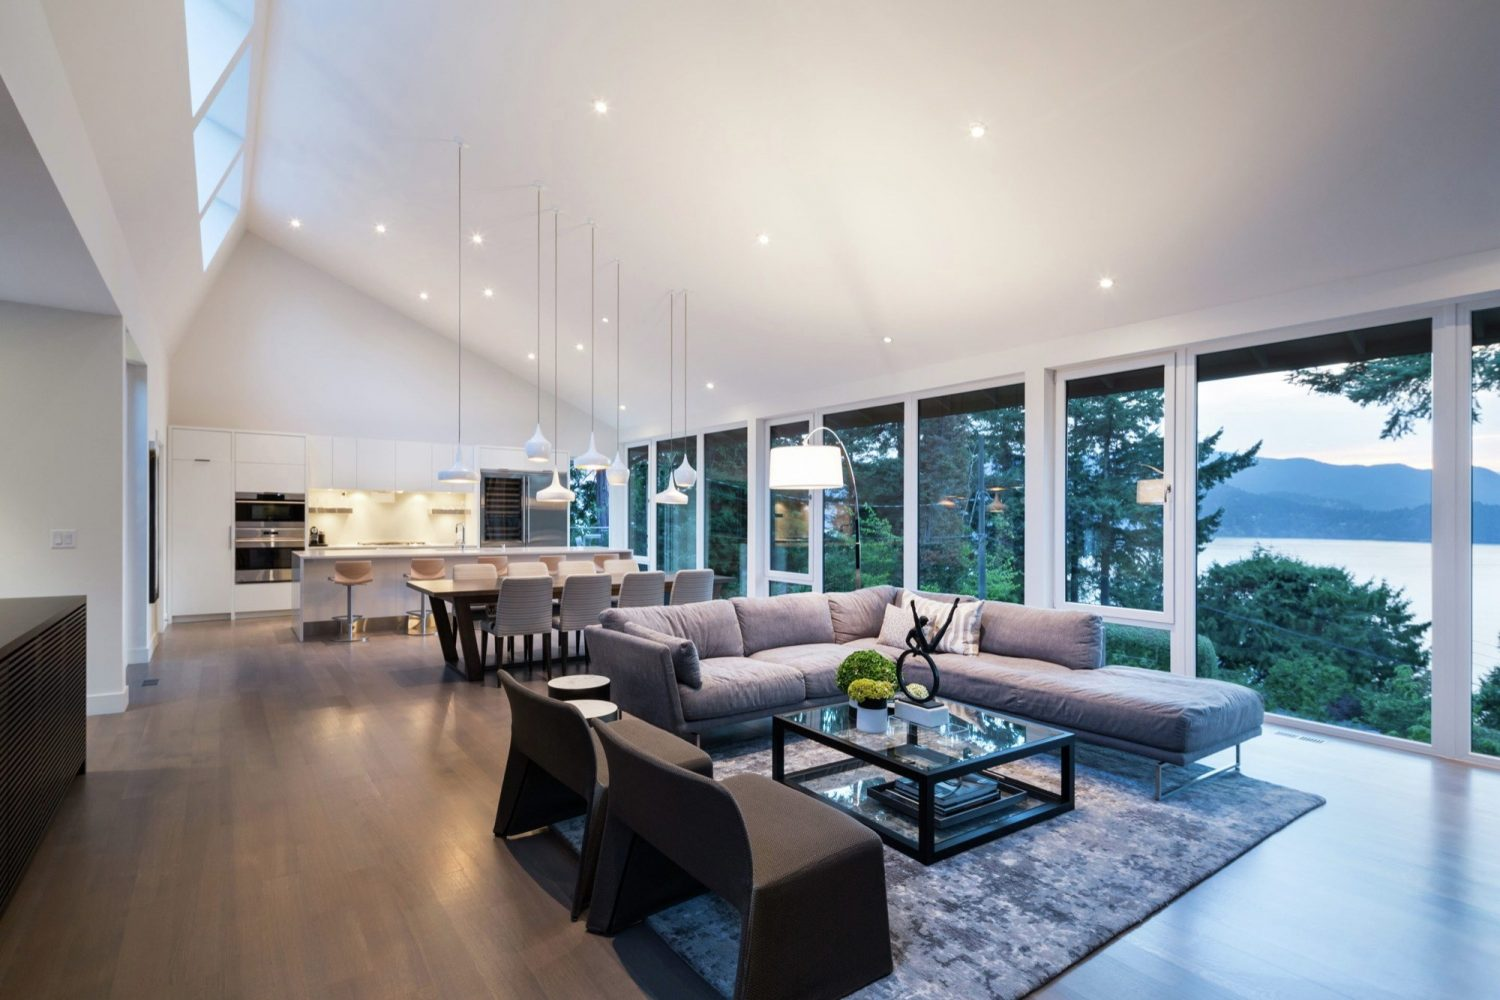 St. Georges by Randy Bens Architect